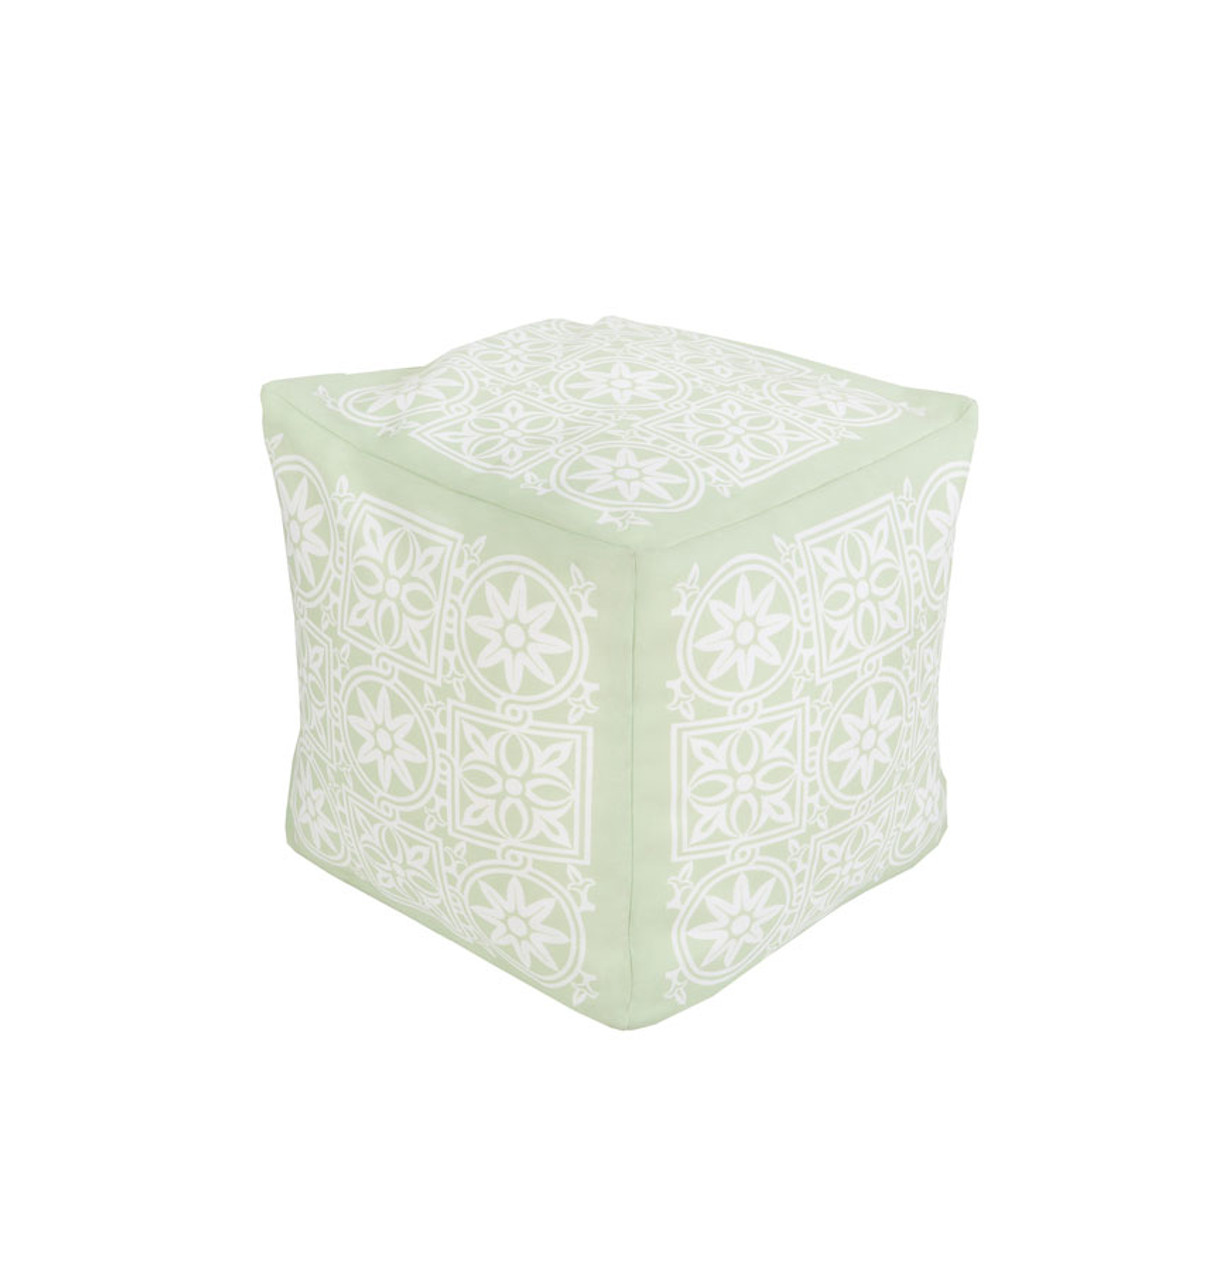 Marvelous 18 Celadon And Cream Encompassed Flowers Square Outdoor Patio Pouf Ottoman 31087570 Machost Co Dining Chair Design Ideas Machostcouk